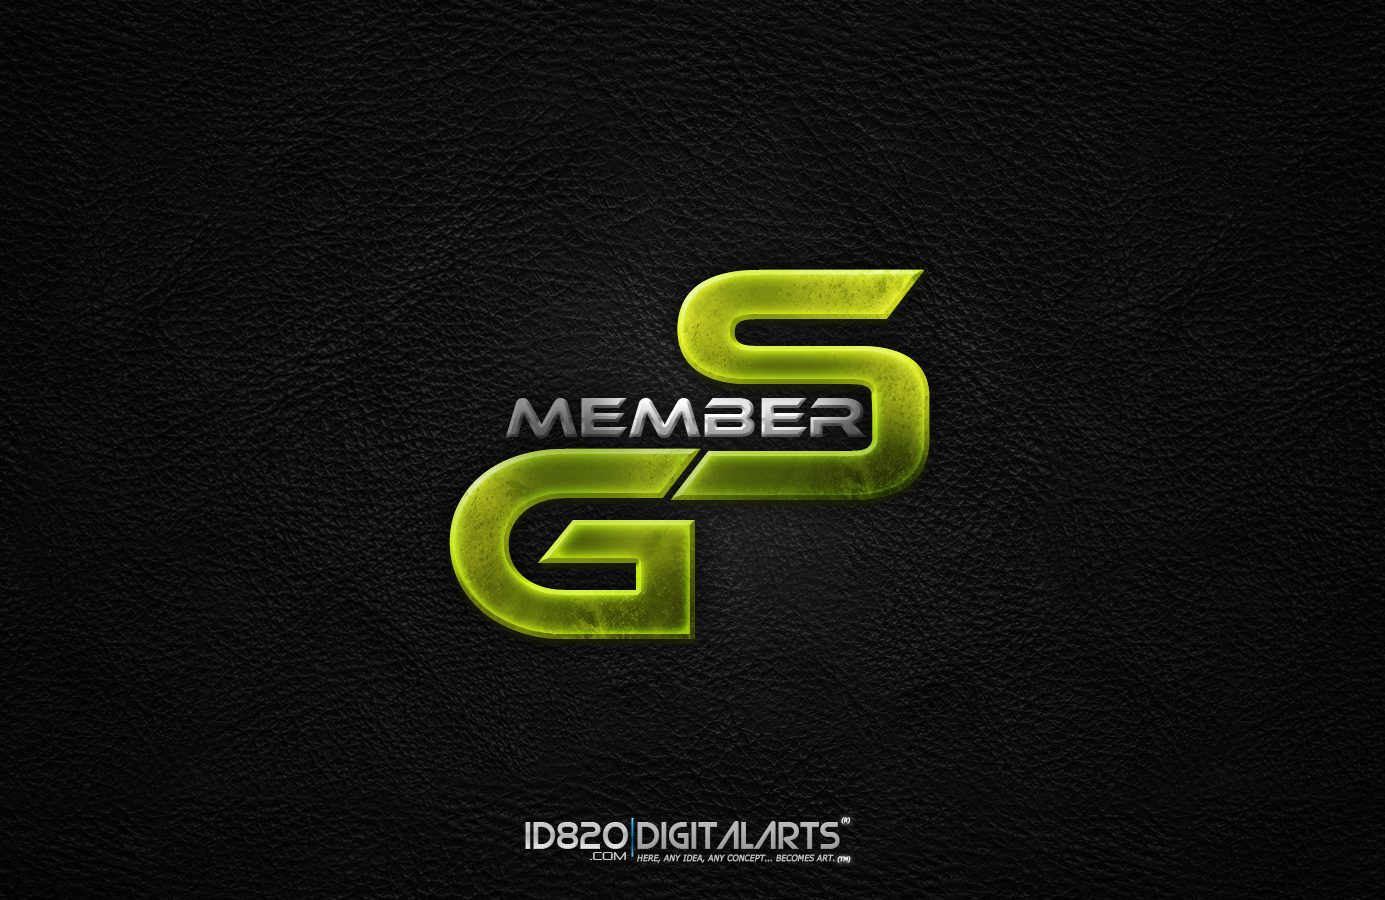 Top Logo Design design a logo for free and download for free : GS Member logo by id820 on DeviantArt